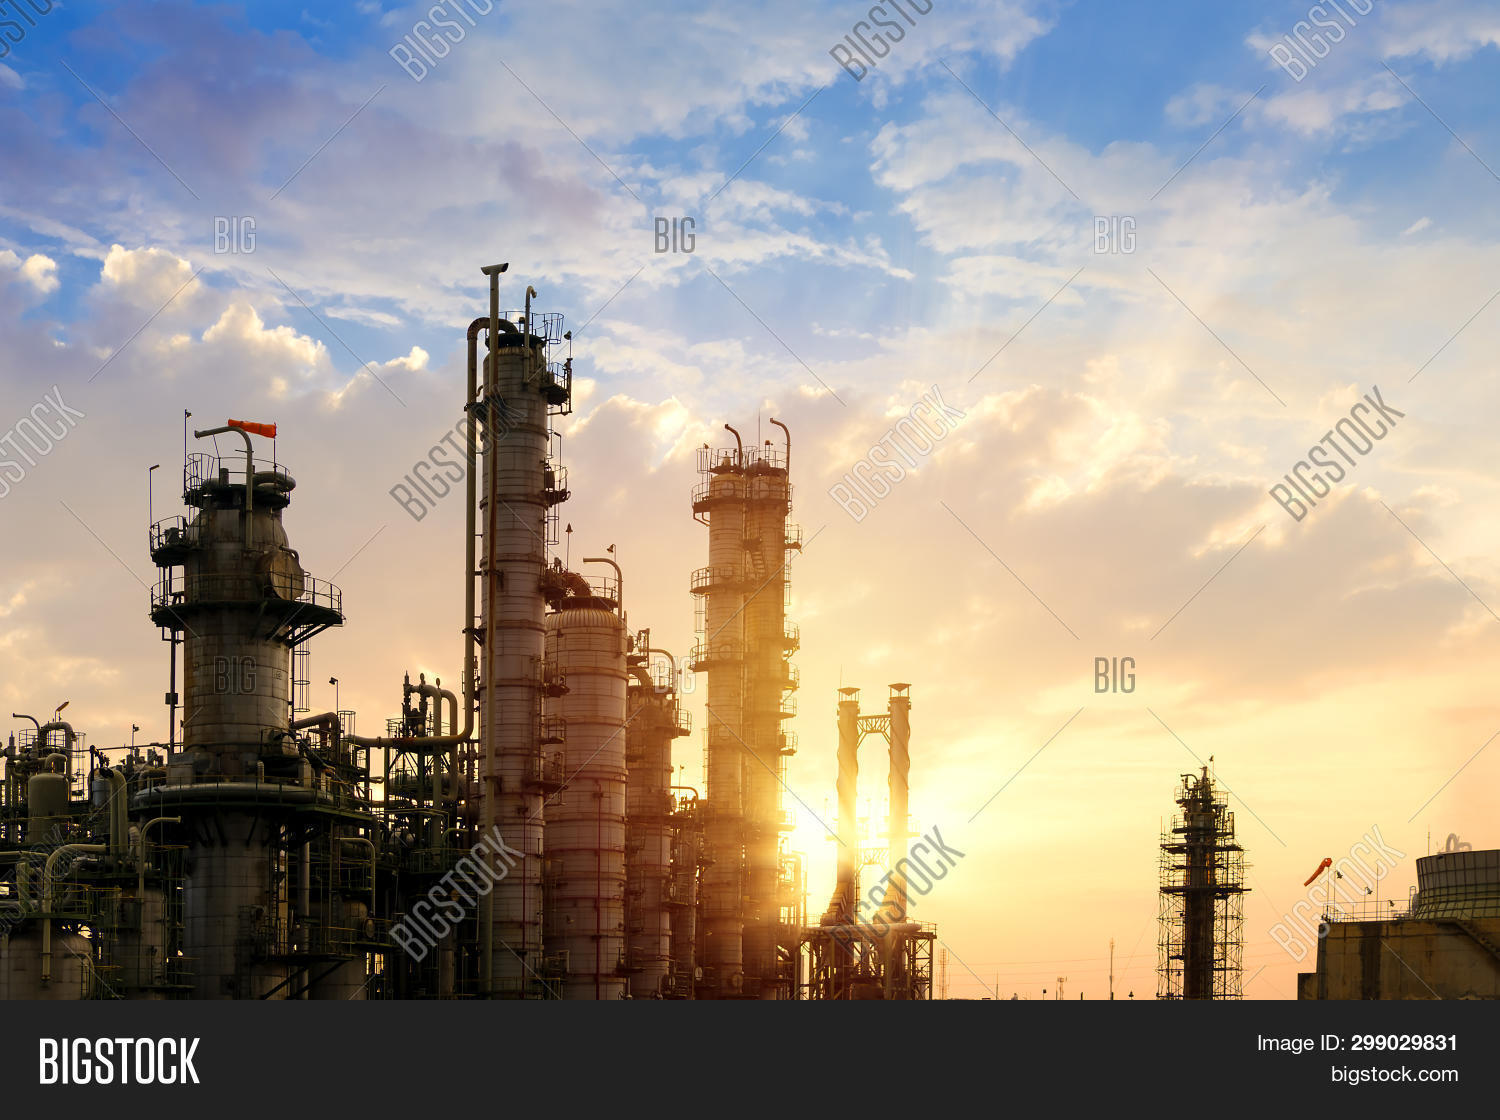 background,blue,business,chemical,chemistry,chimney,construction,distillation,distillery,ecology,economy,energy,engineering,environment,equipment,evening,factory,fuel,gas,gasoline,global,heavy,hydrocarbon,industrial,industry,lighting,machinery,manufacturing,metal,morning,night,oil,petrochemical,petrol,petroleum,pipe,pipeline,plant,pollution,power,production,refinery,sky,smoke,stack,structure,sunset,technology,tower,twilight